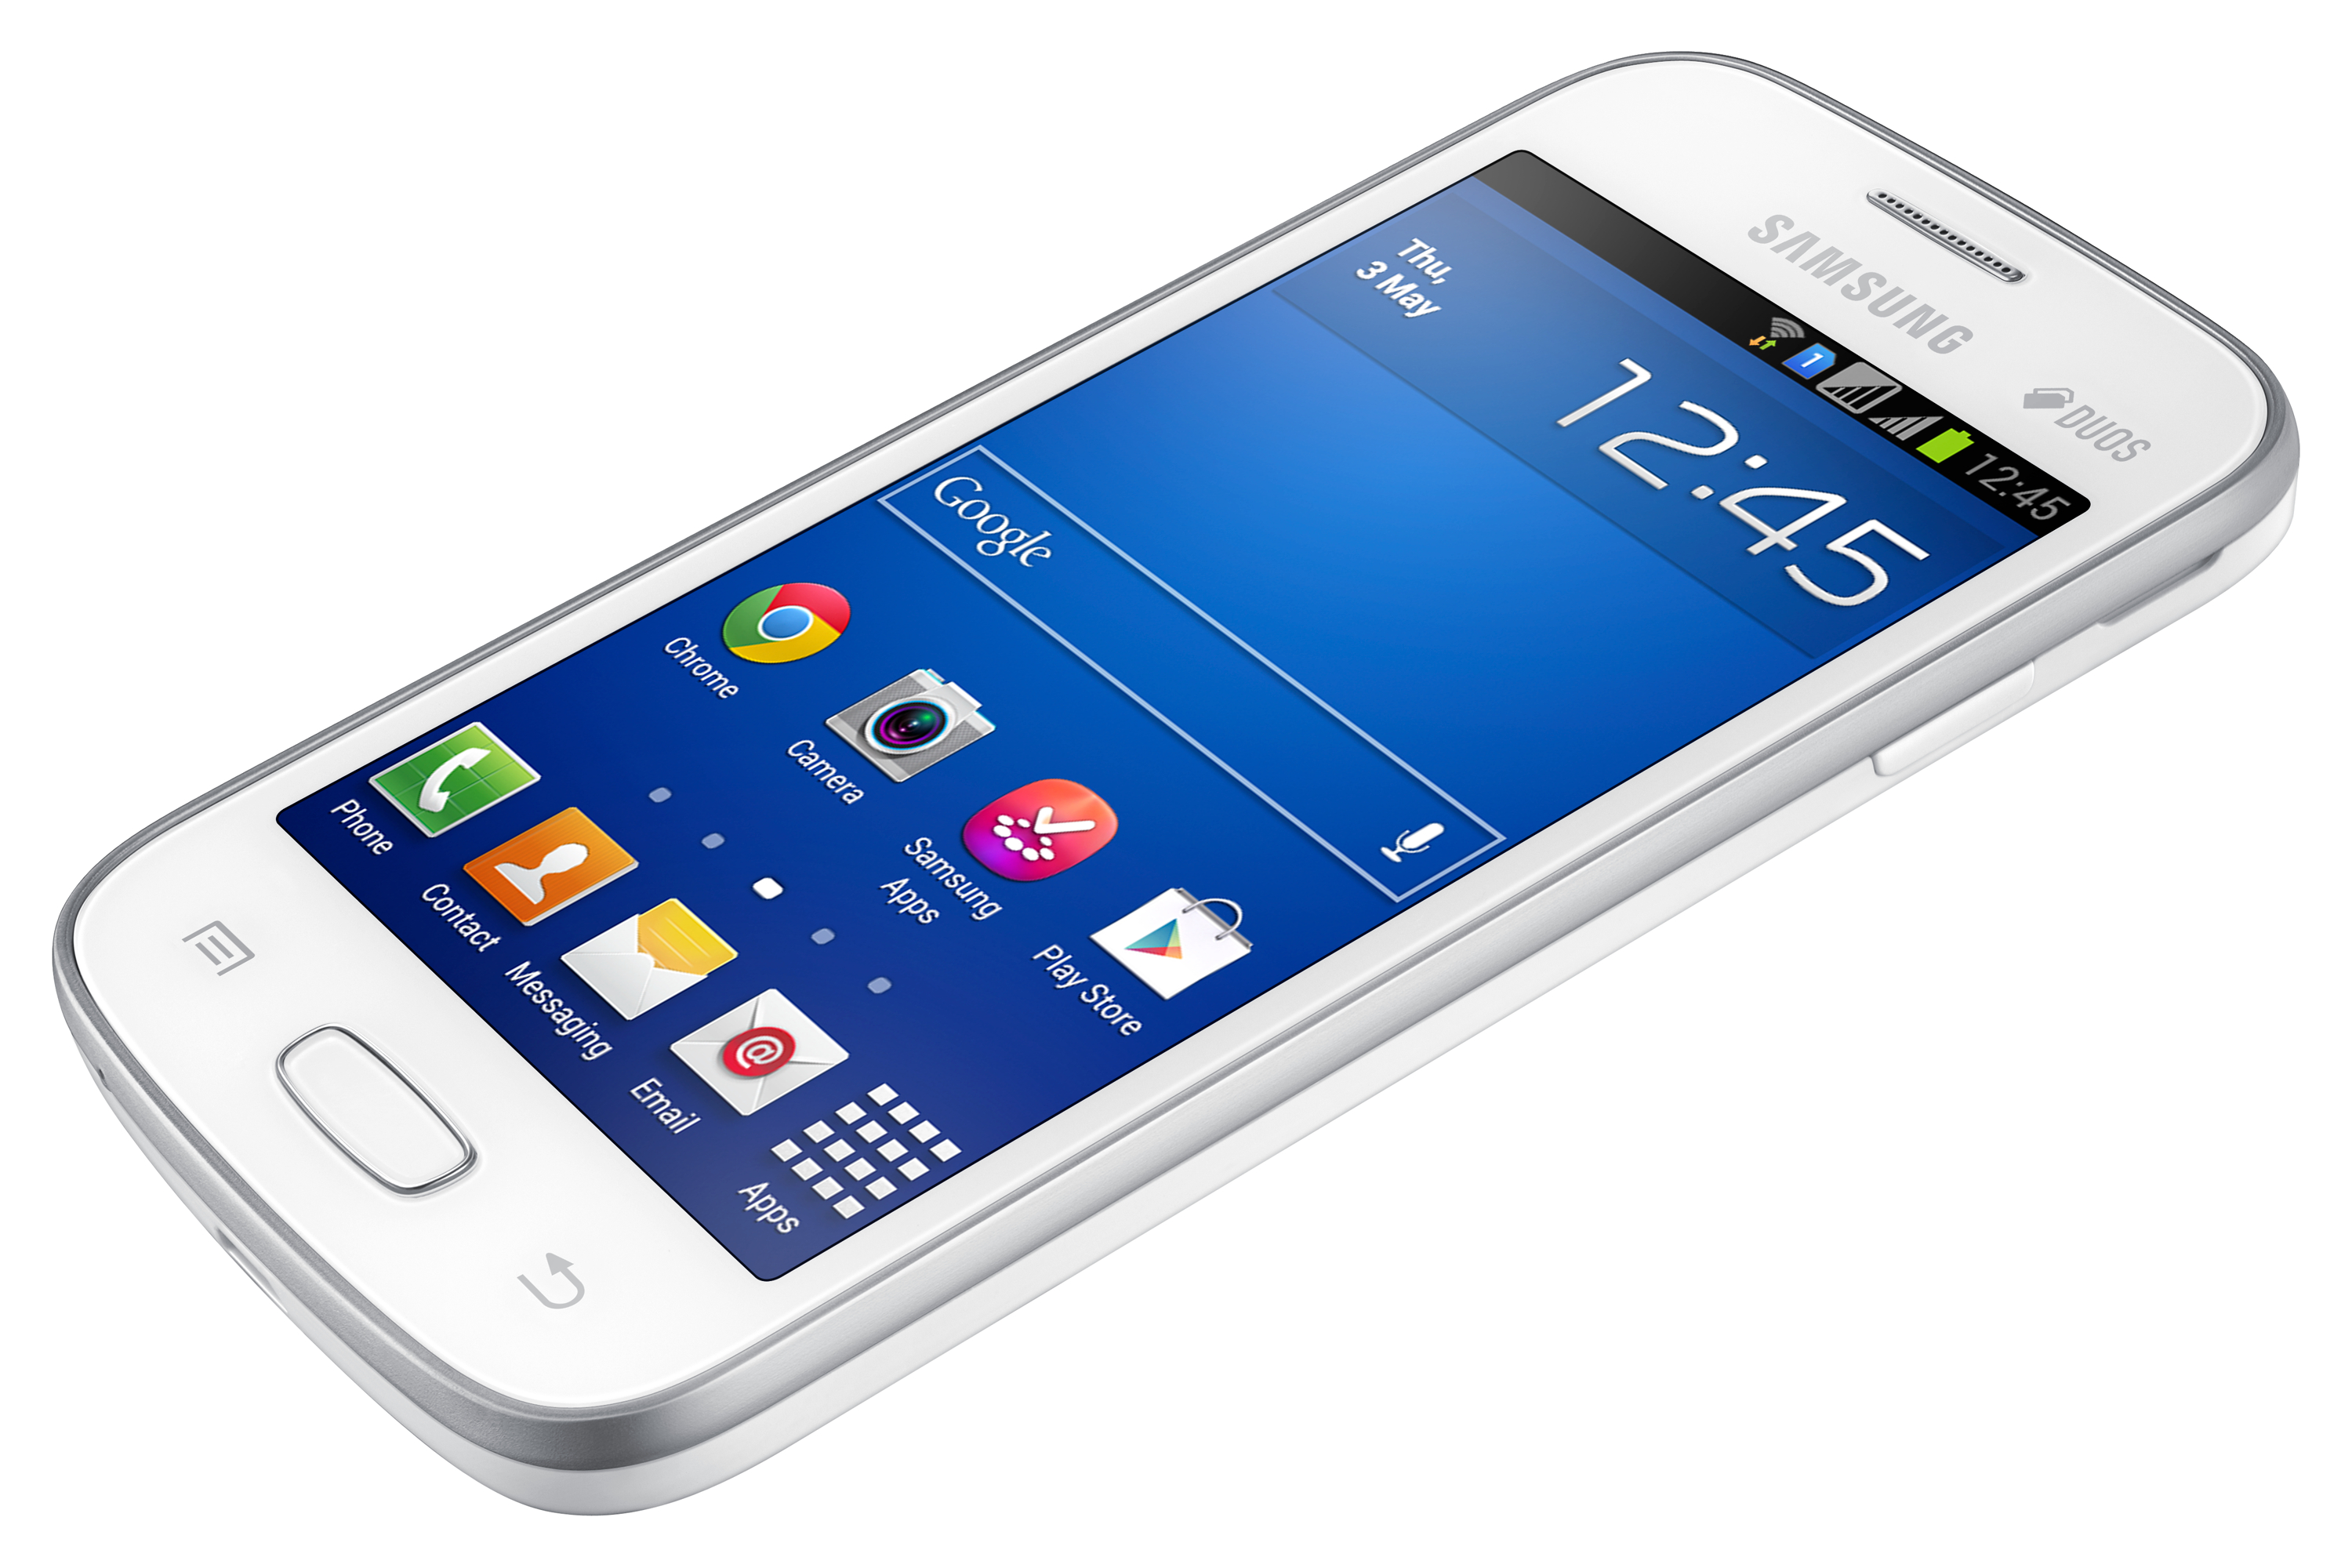 Update Galaxy Start Pro S7262 to Android 4.4.2 Kitkat firmware